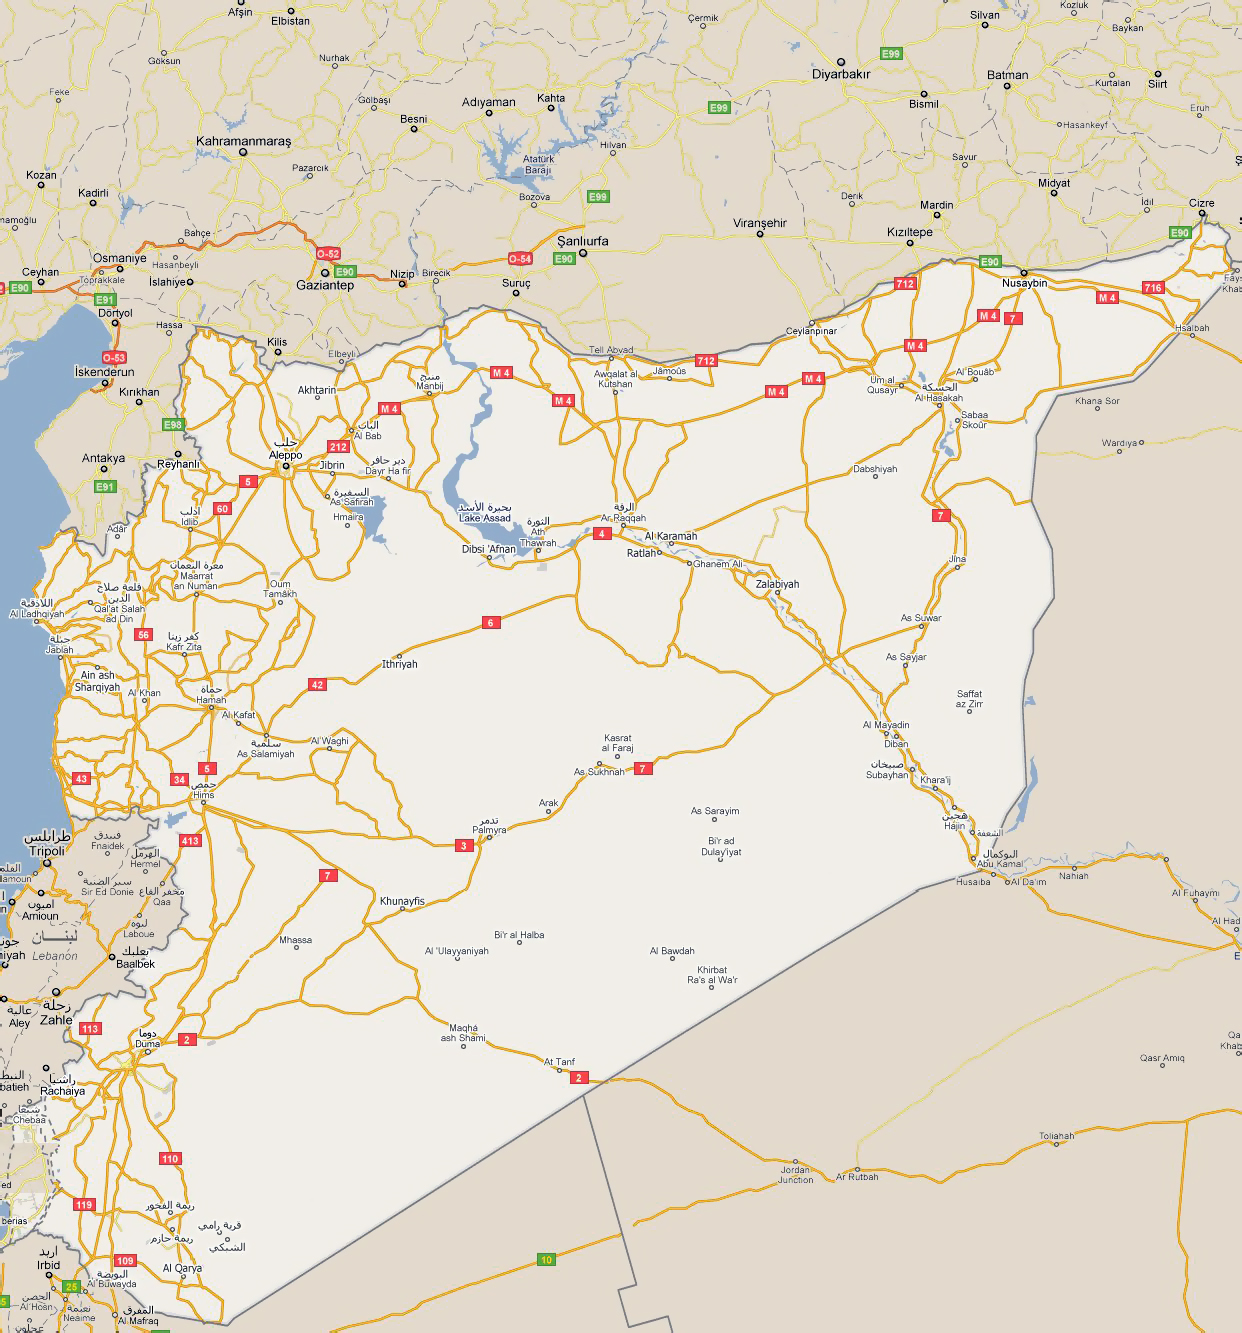 Maps of Syria | Detailed map of Syria in English | Tourist map of ...